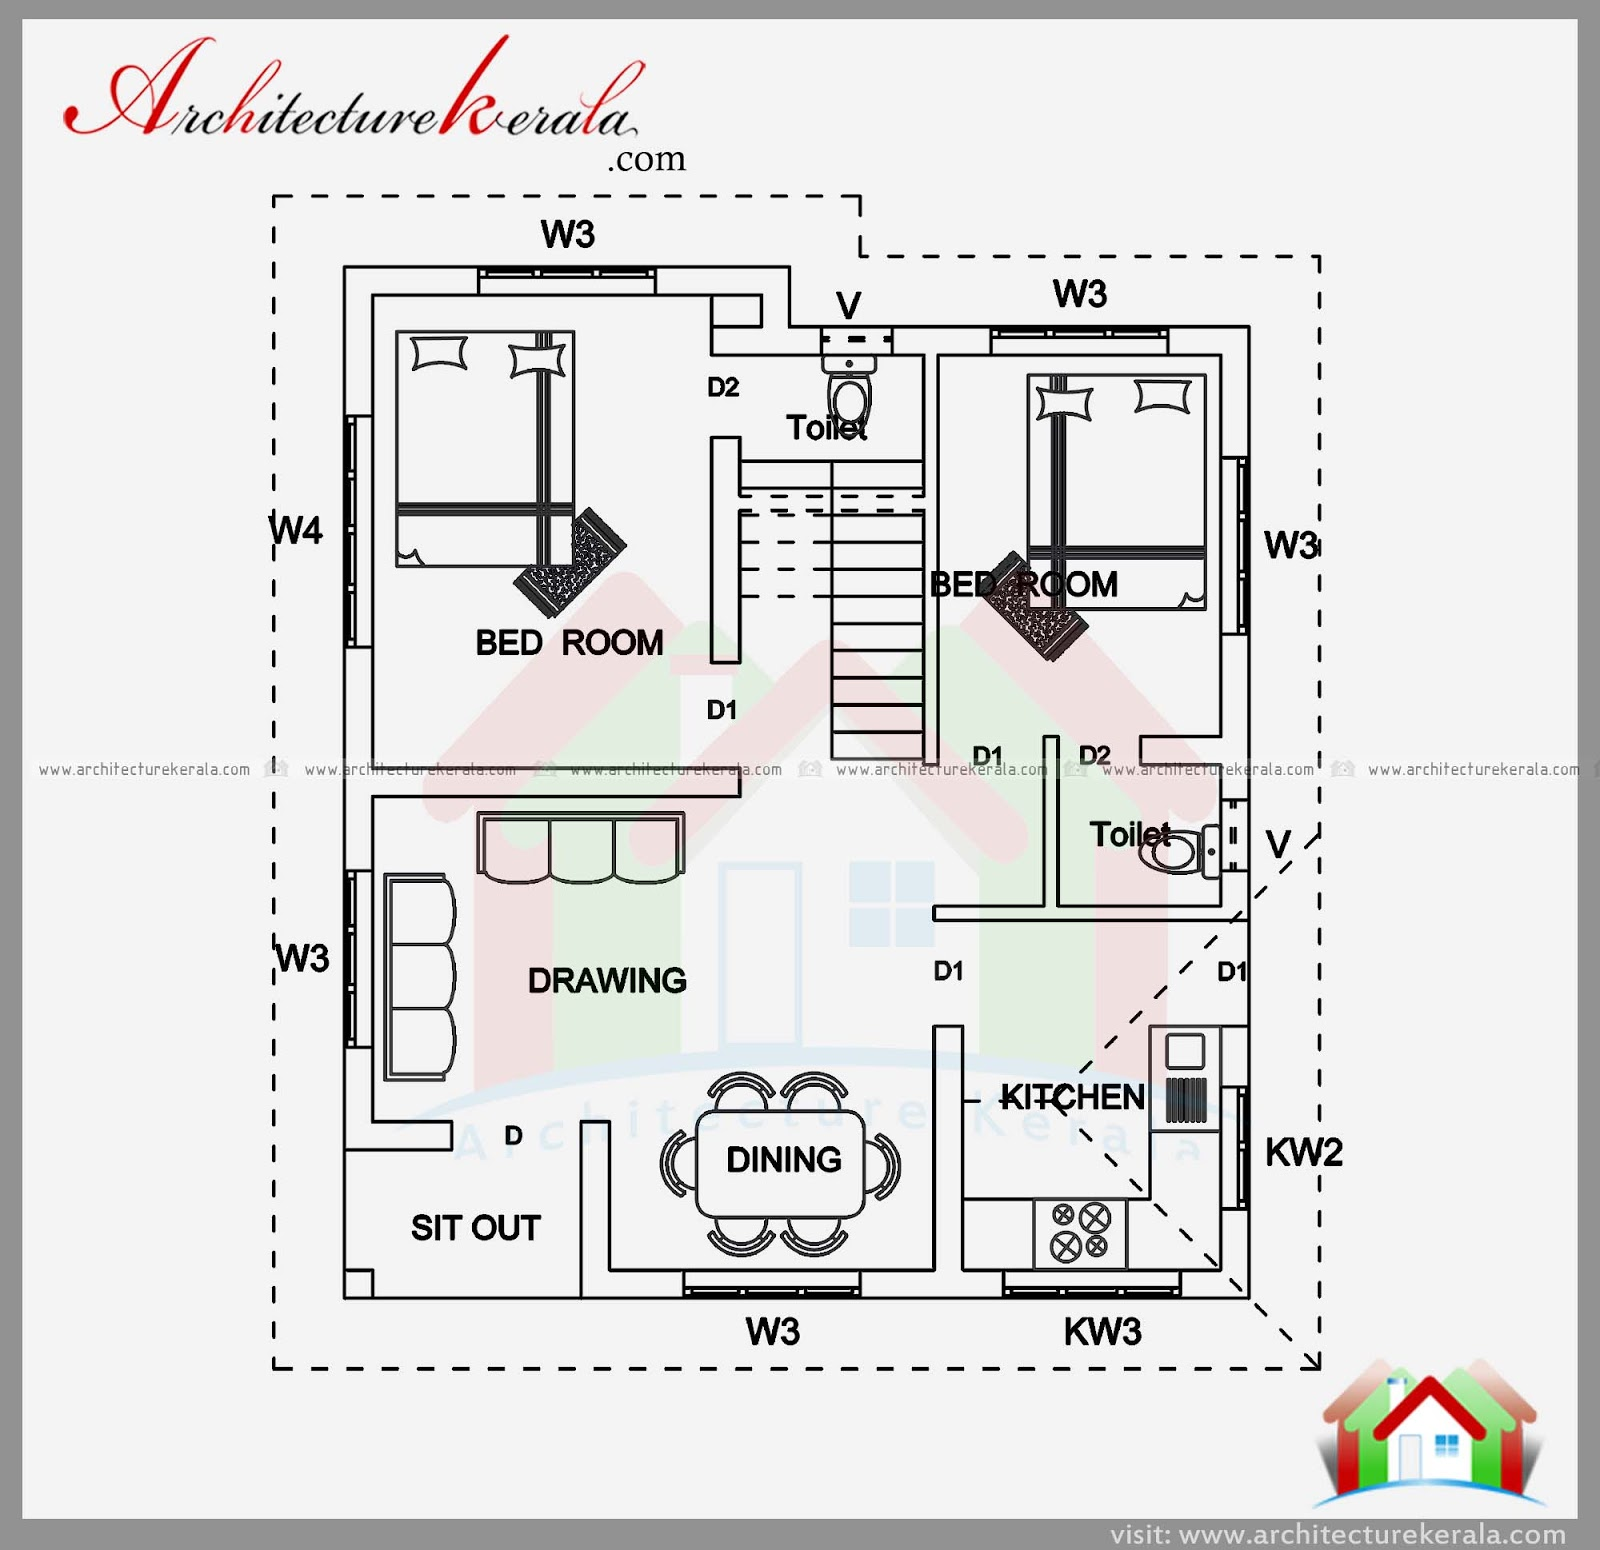 2 bedroom house plan and elevation in 700 sqft Two room plan